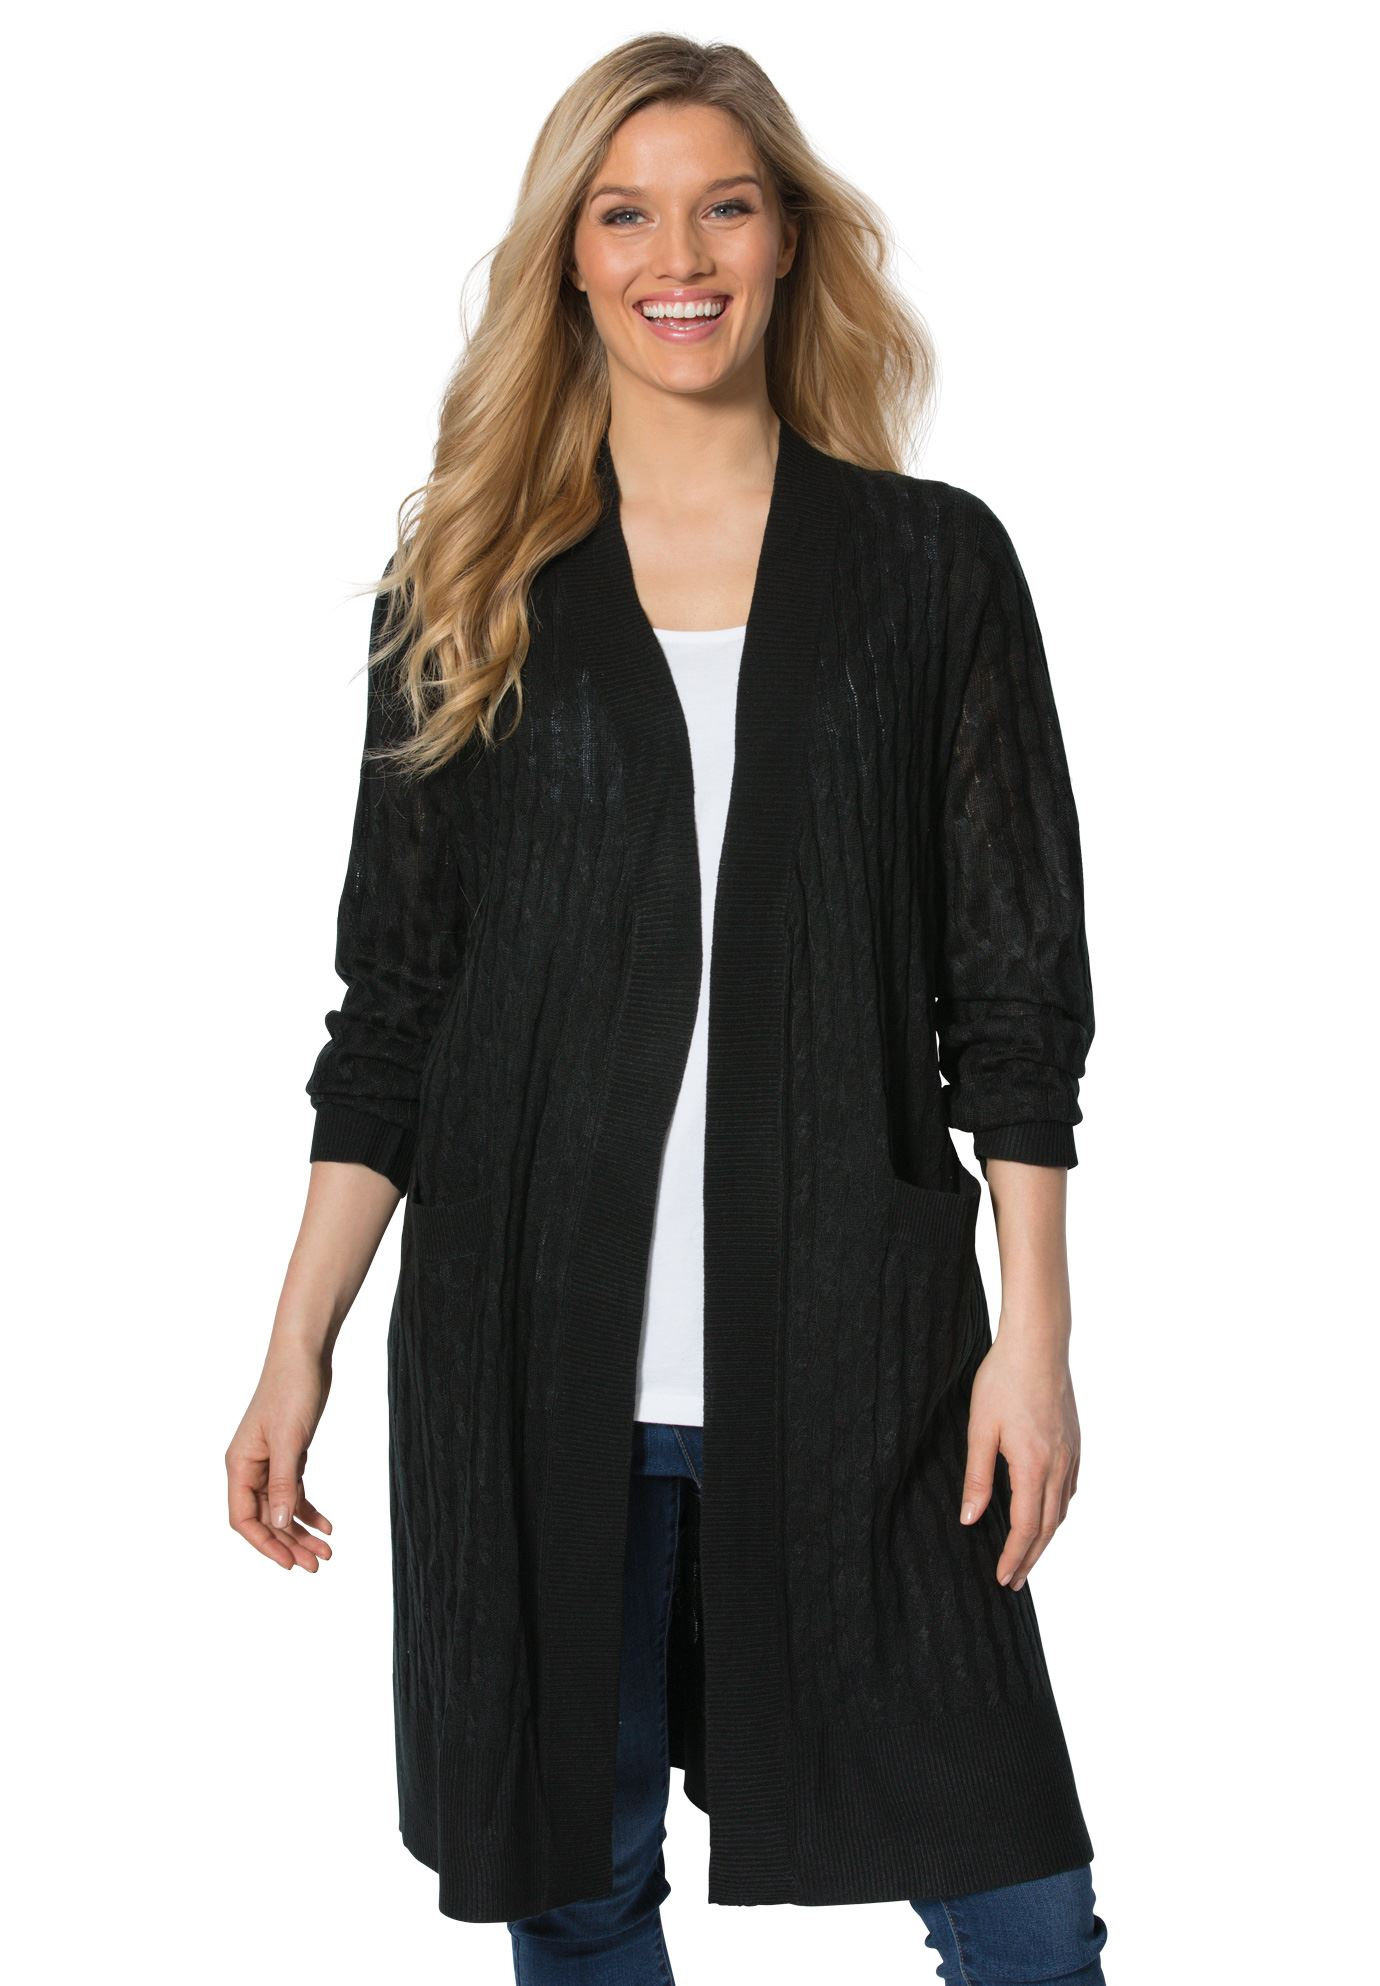 b531ad44512 Lightweight Cabled Duster Cardigan